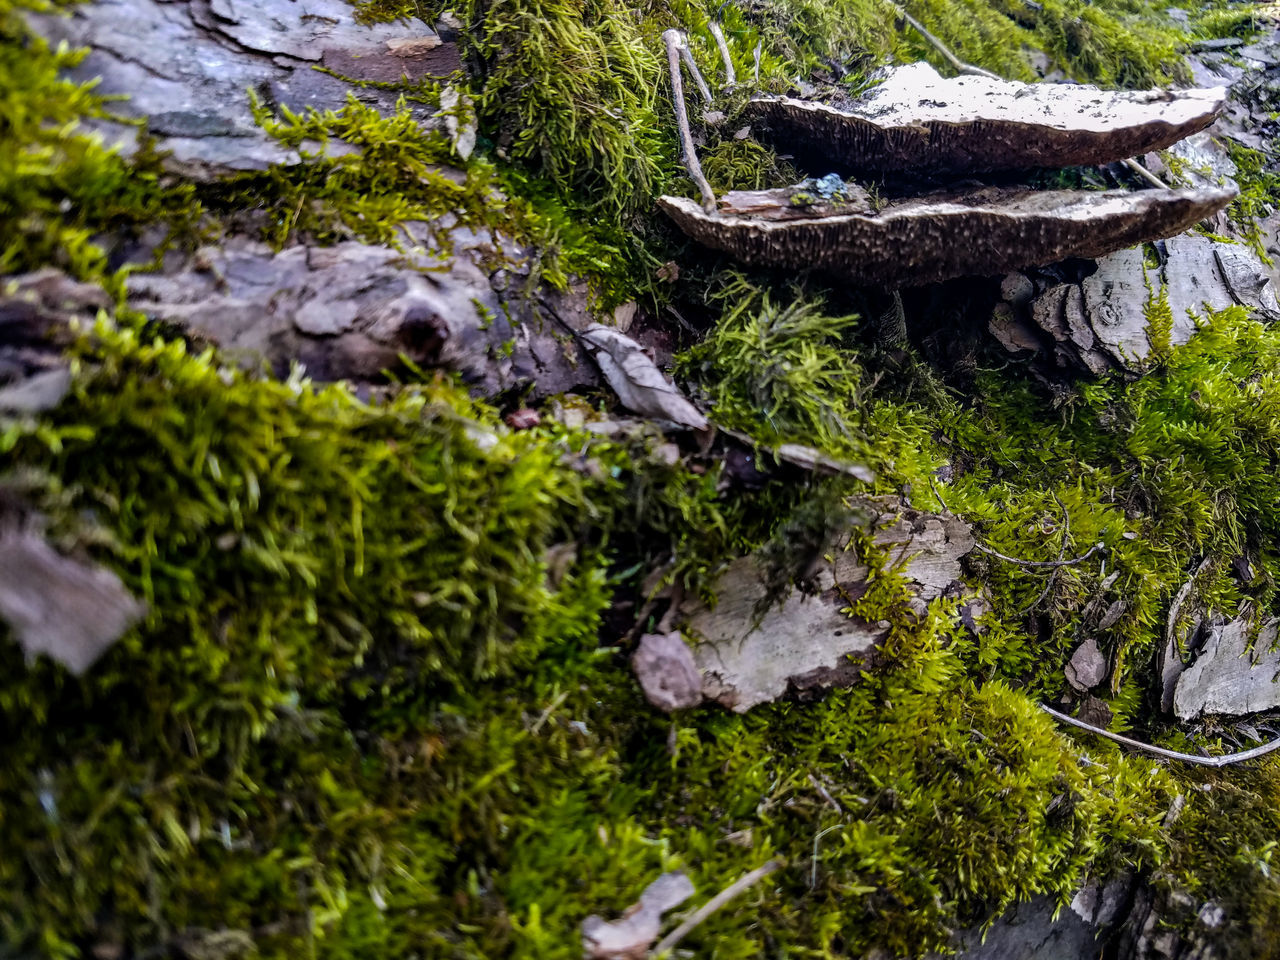 Nature No People Outdoors Day Tree Close-up Forest Overgrown Fallen Tree Fungus Mushrooms Mossy Moss March Spring Springtime Nature Park  Crow River Nature Park PaynesvilleBark Of A Tree Green Color Beauty In Nature Plant Minnesota Growth